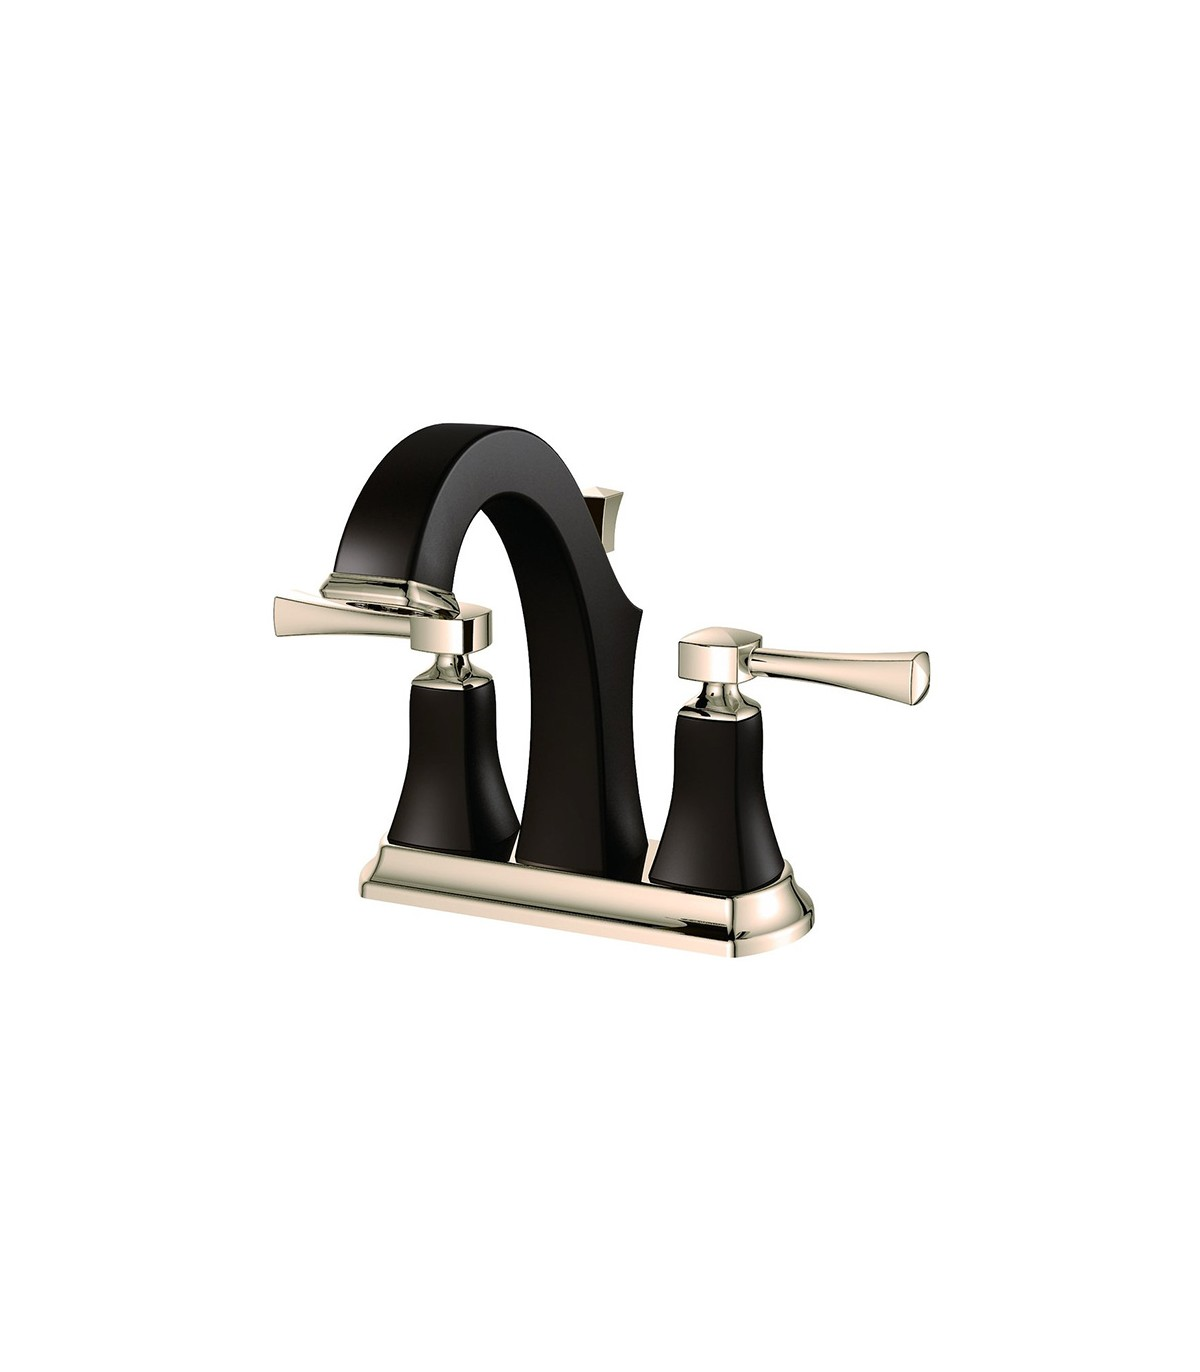 LS-BF2 Bathroom Faucet Bronze Polished Nickel